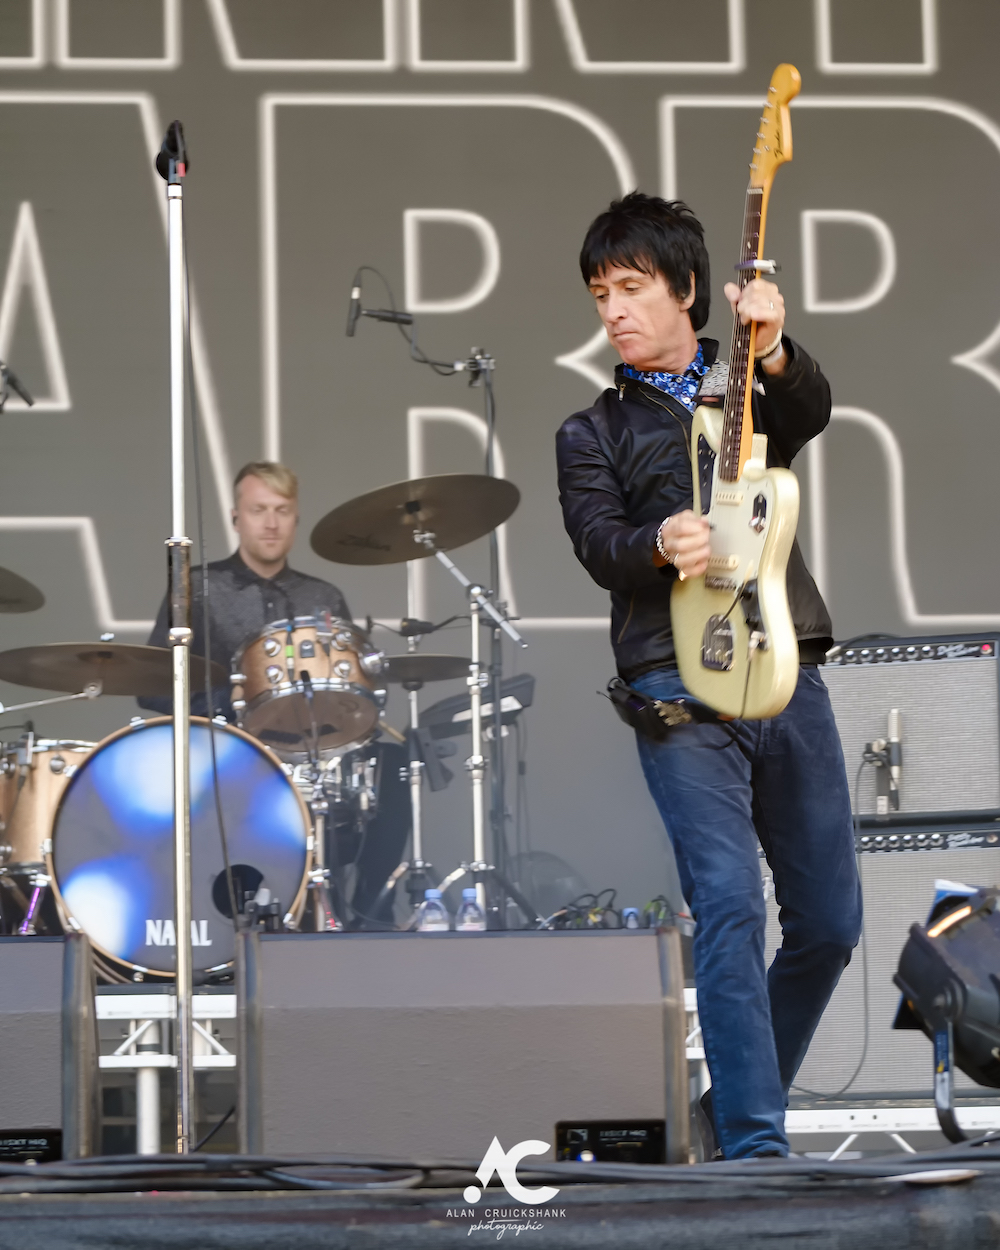 Johnny Marr Belladrum 20 19 4 - Belladrum 2/8/2019 - REVIEW